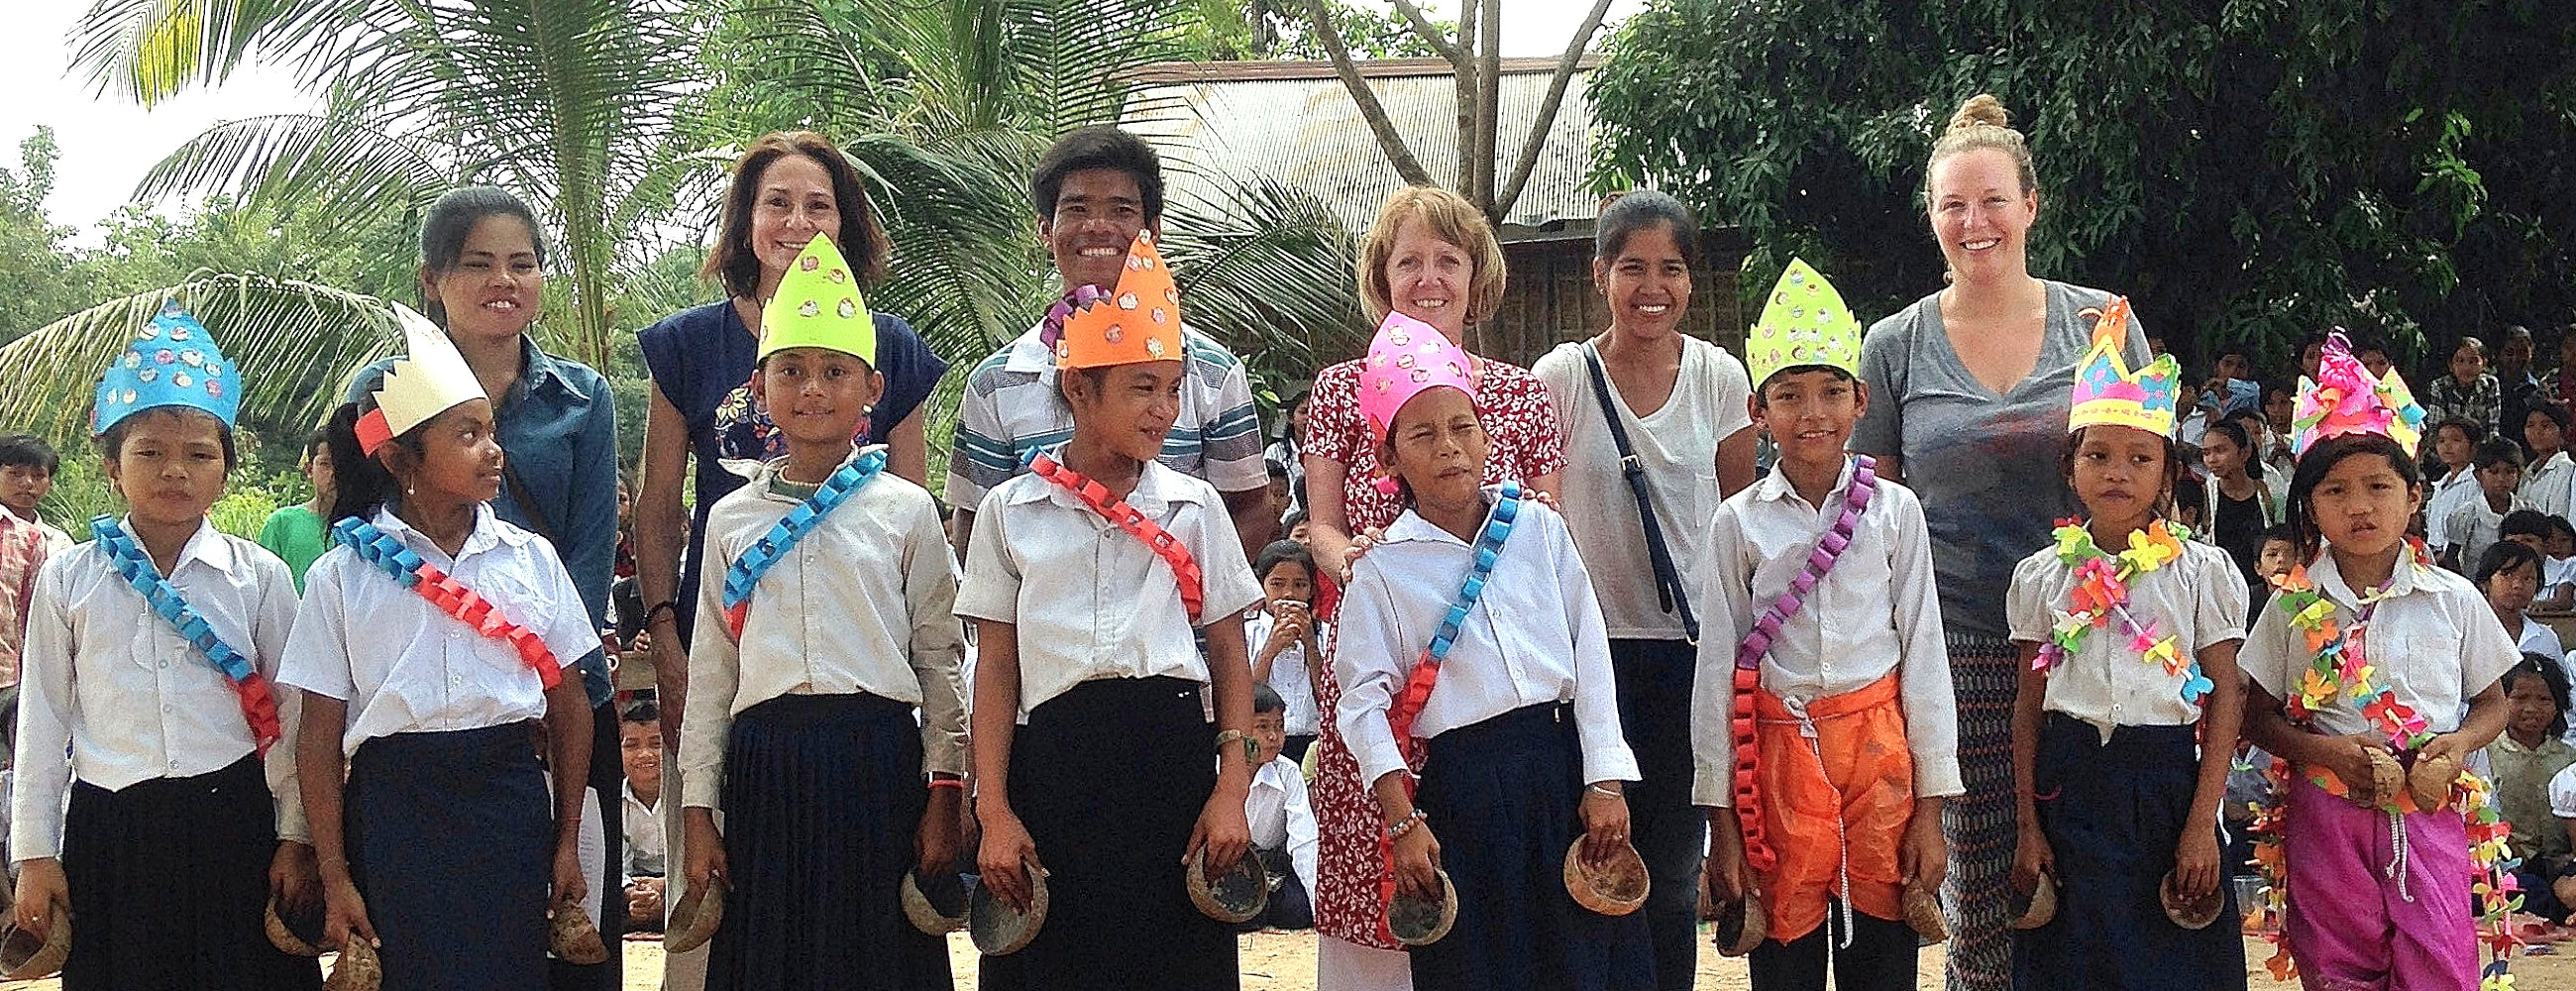 Prize giving at the Cambodia community Project